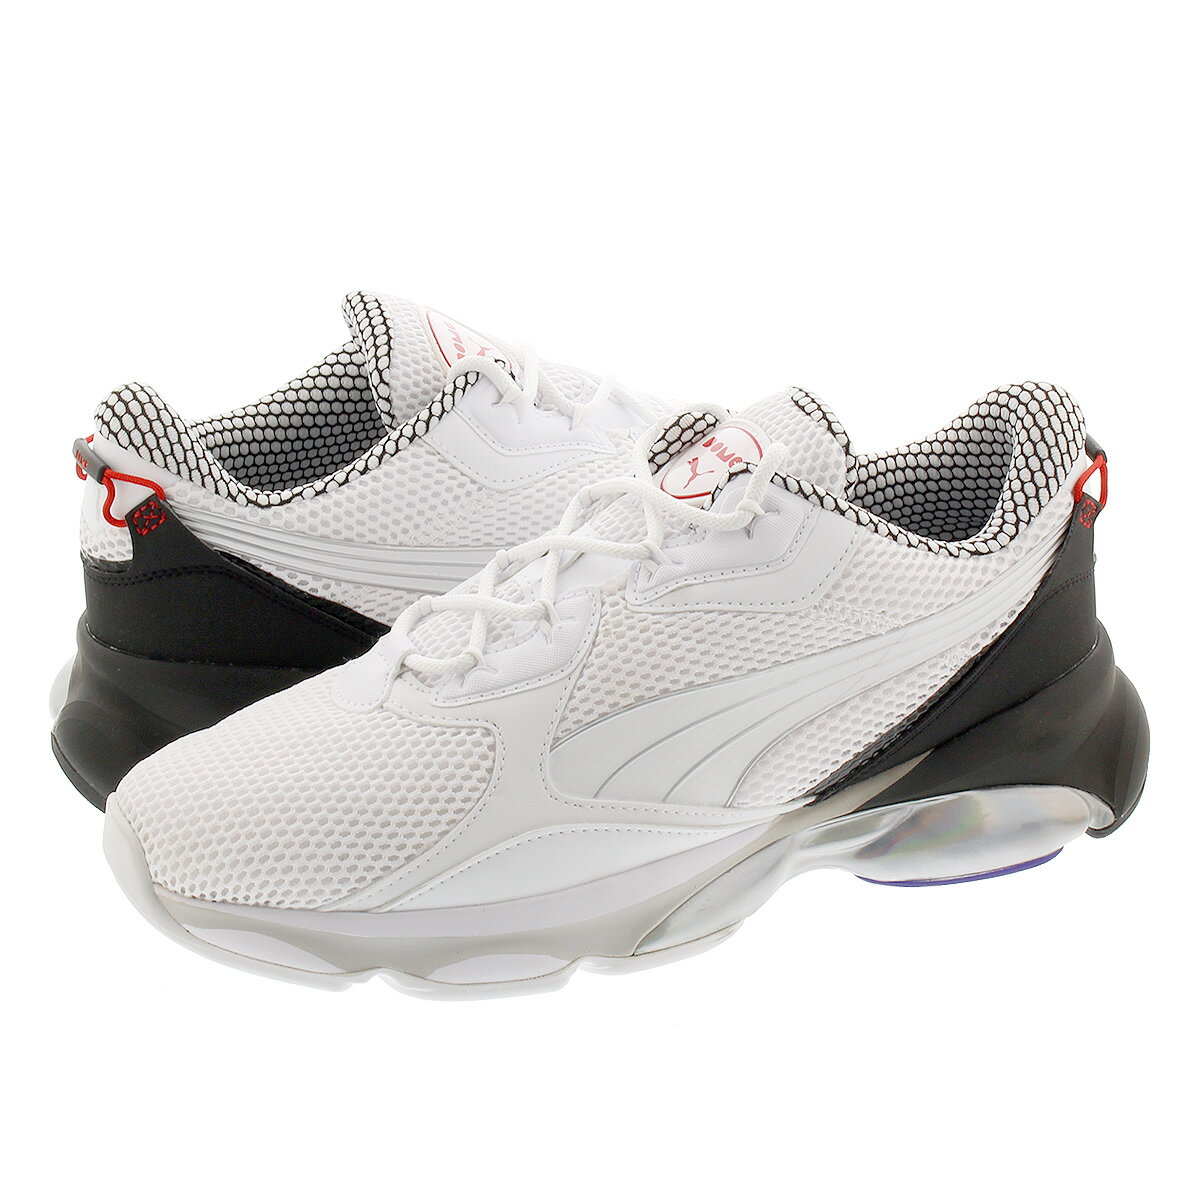 メンズ靴, スニーカー  PUMA CELL DOME GALAXY WHITEBLACK 371763-01